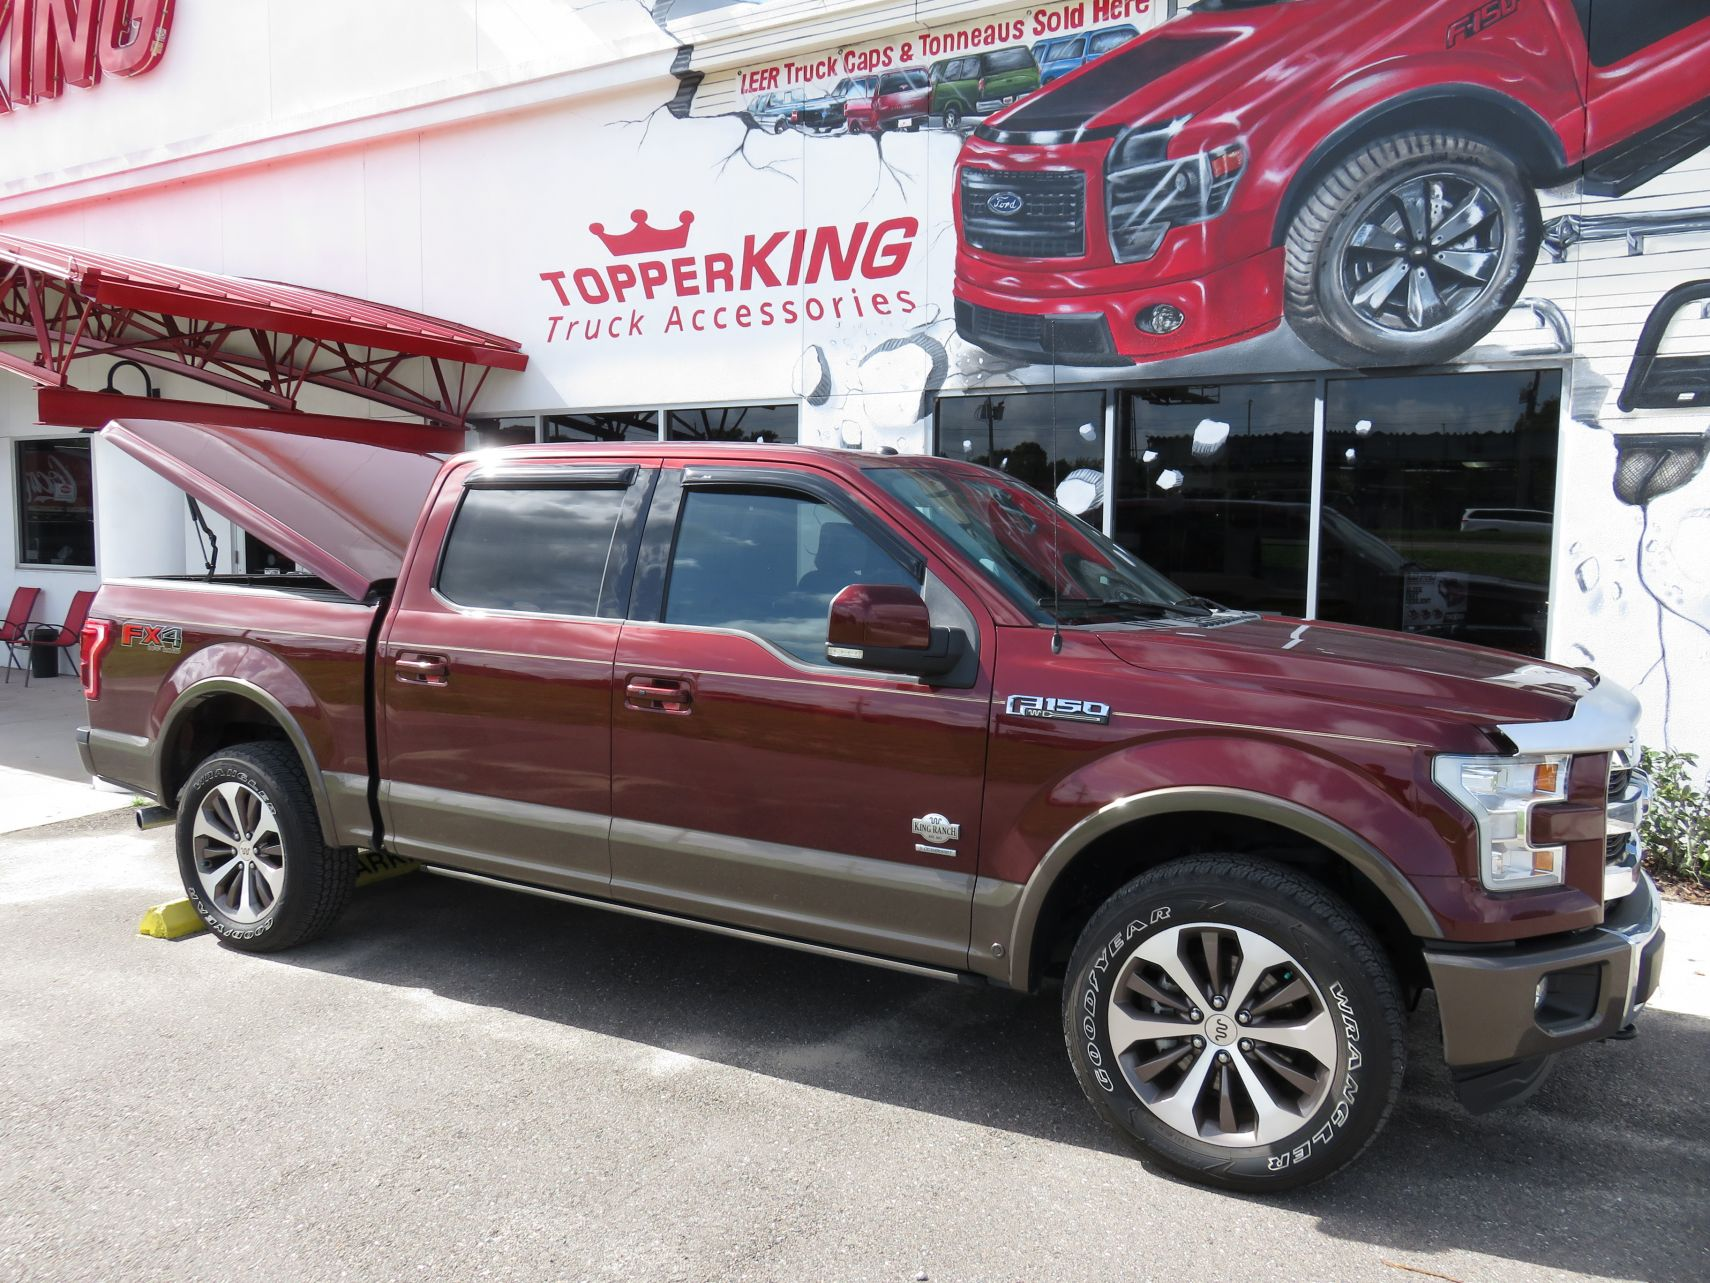 2016 Ford F150 LEER 550 Hitch, Vent Visors, Bedliner, Nerf Bars, Tint by TopperKING in Brandon, FL 813-689-2449 or Clearwater, FL 727-530-9066. Call today!